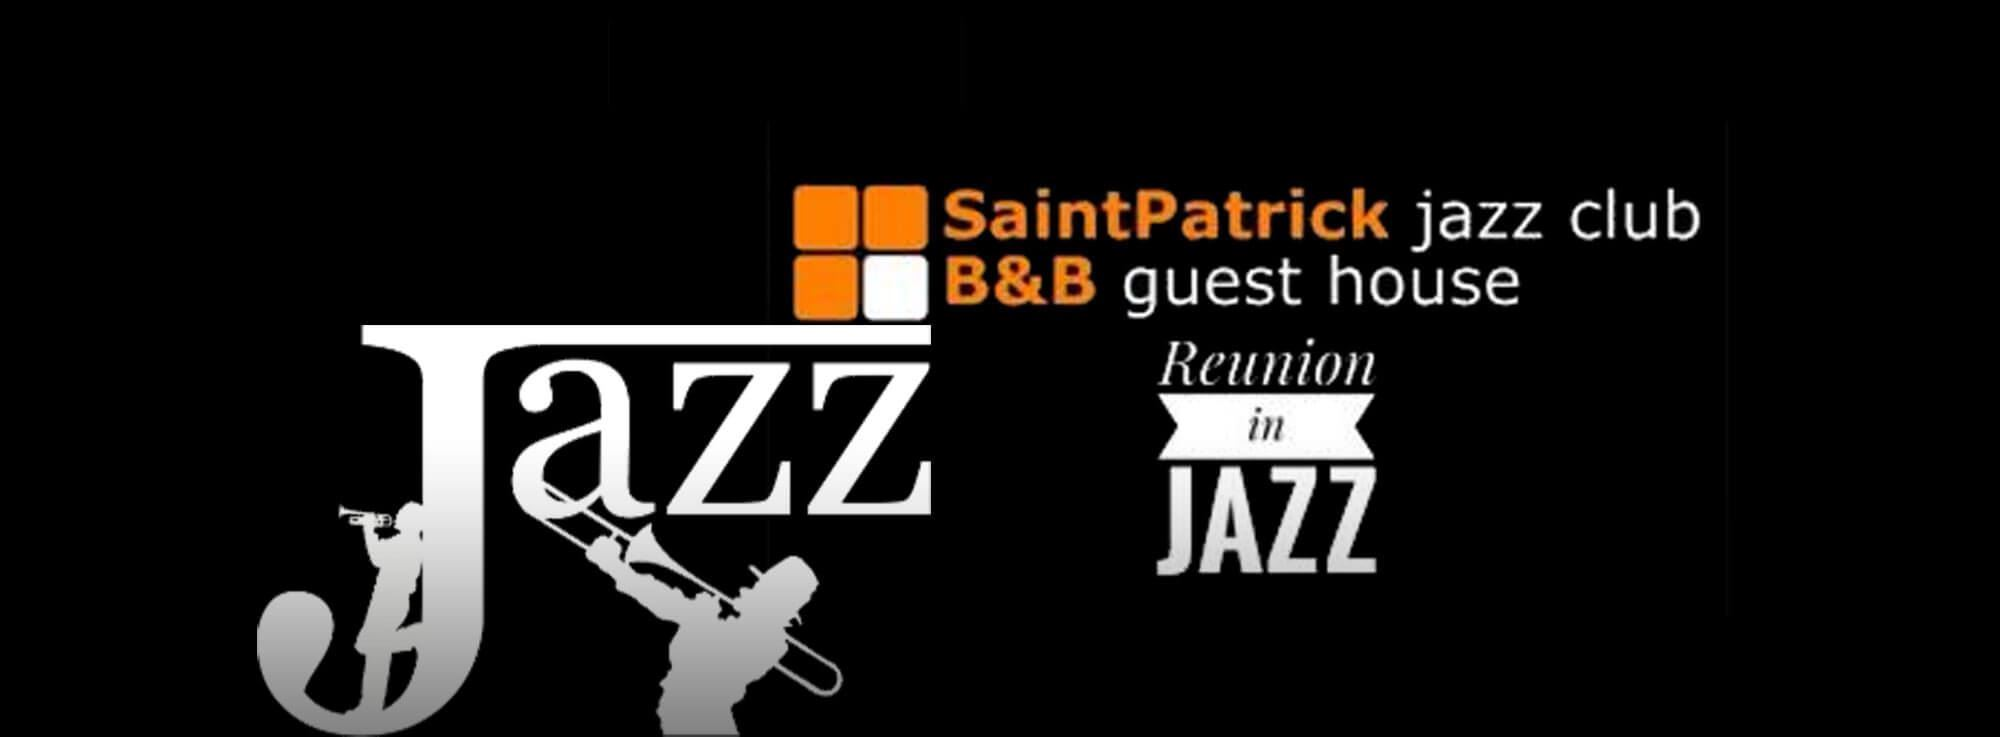 Barletta: Reunion in jazz